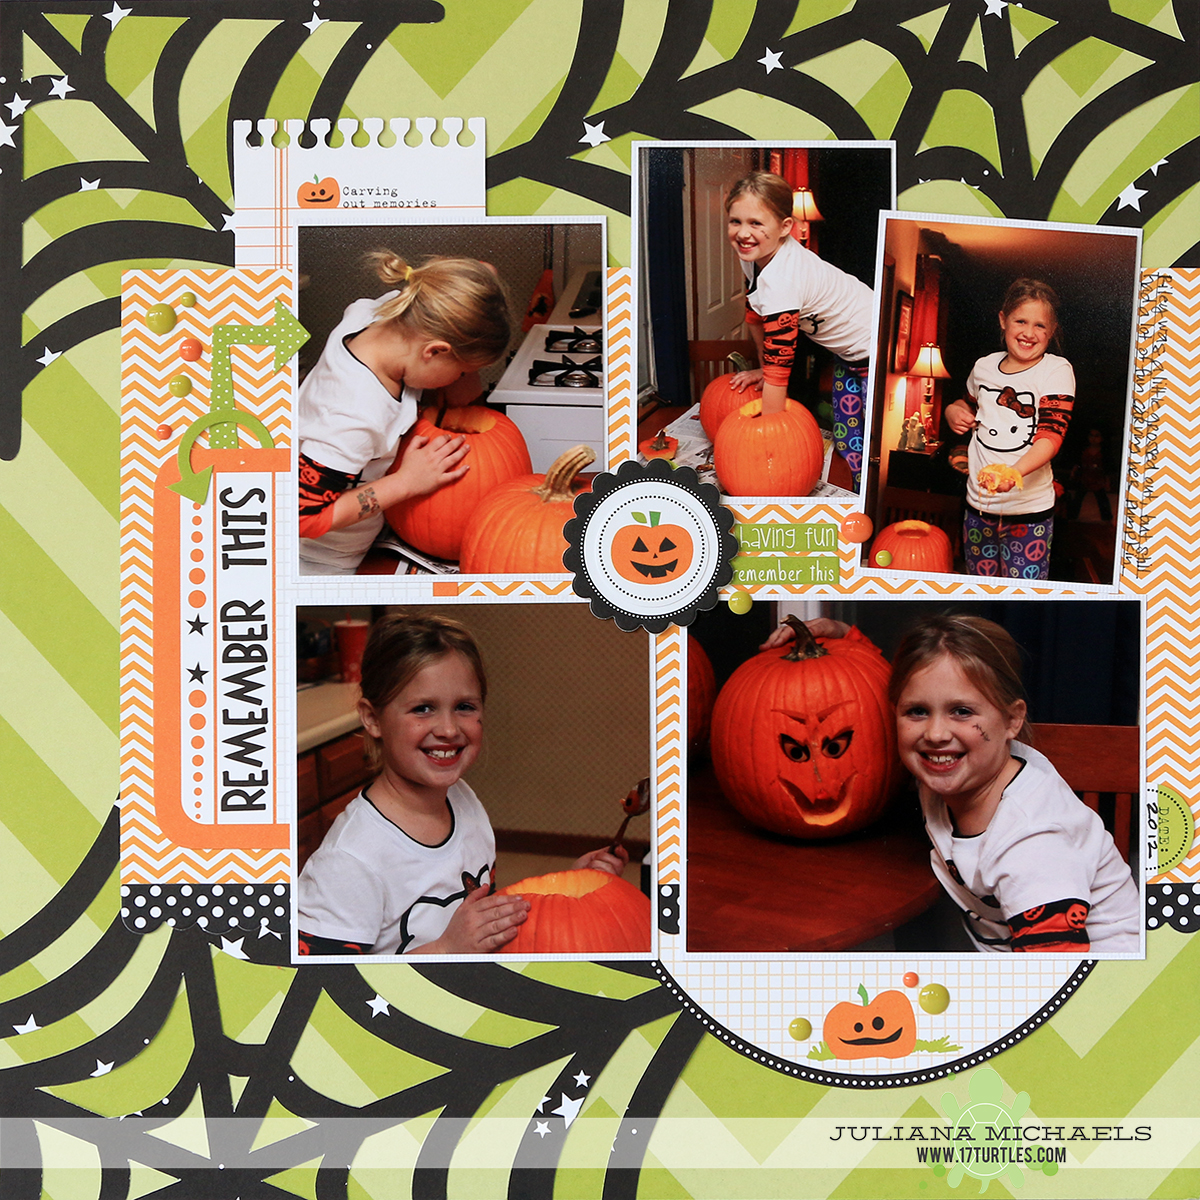 http://2.bp.blogspot.com/-H_I0msgNNDk/VA8hHmjAPLI/AAAAAAAASMw/WOb9KNxD5fk/s1600/Remember_This_Halloween_Scrapbook_Page_Juliana_Michaels_17turtles_Digital_Cut_Files_Spooky_Spiders_Bats_Cats_01.JPG